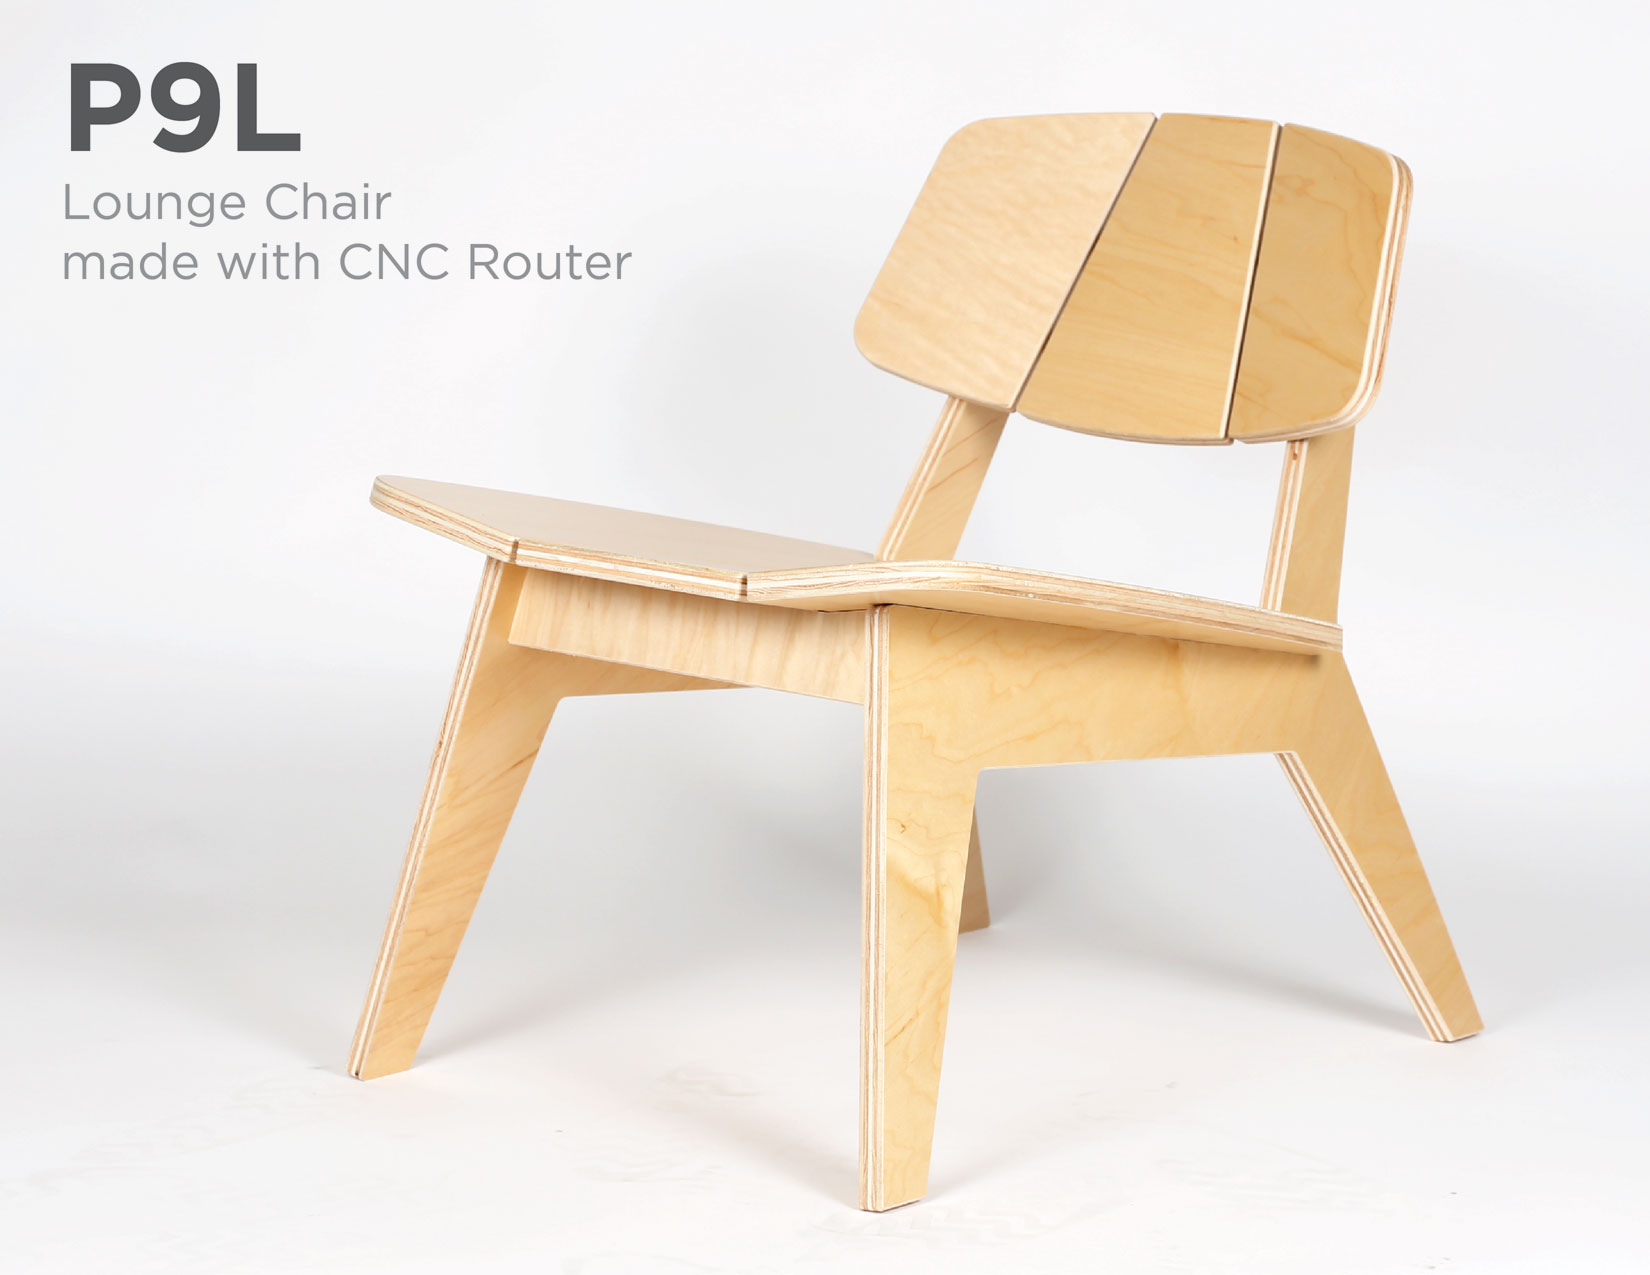 One Of The Main Reasons Is That CNC Routers Have Become Not Only Affordable  But Also Fairly Easy To Make. You Can Actually Download DIY Instructions To  Make ...